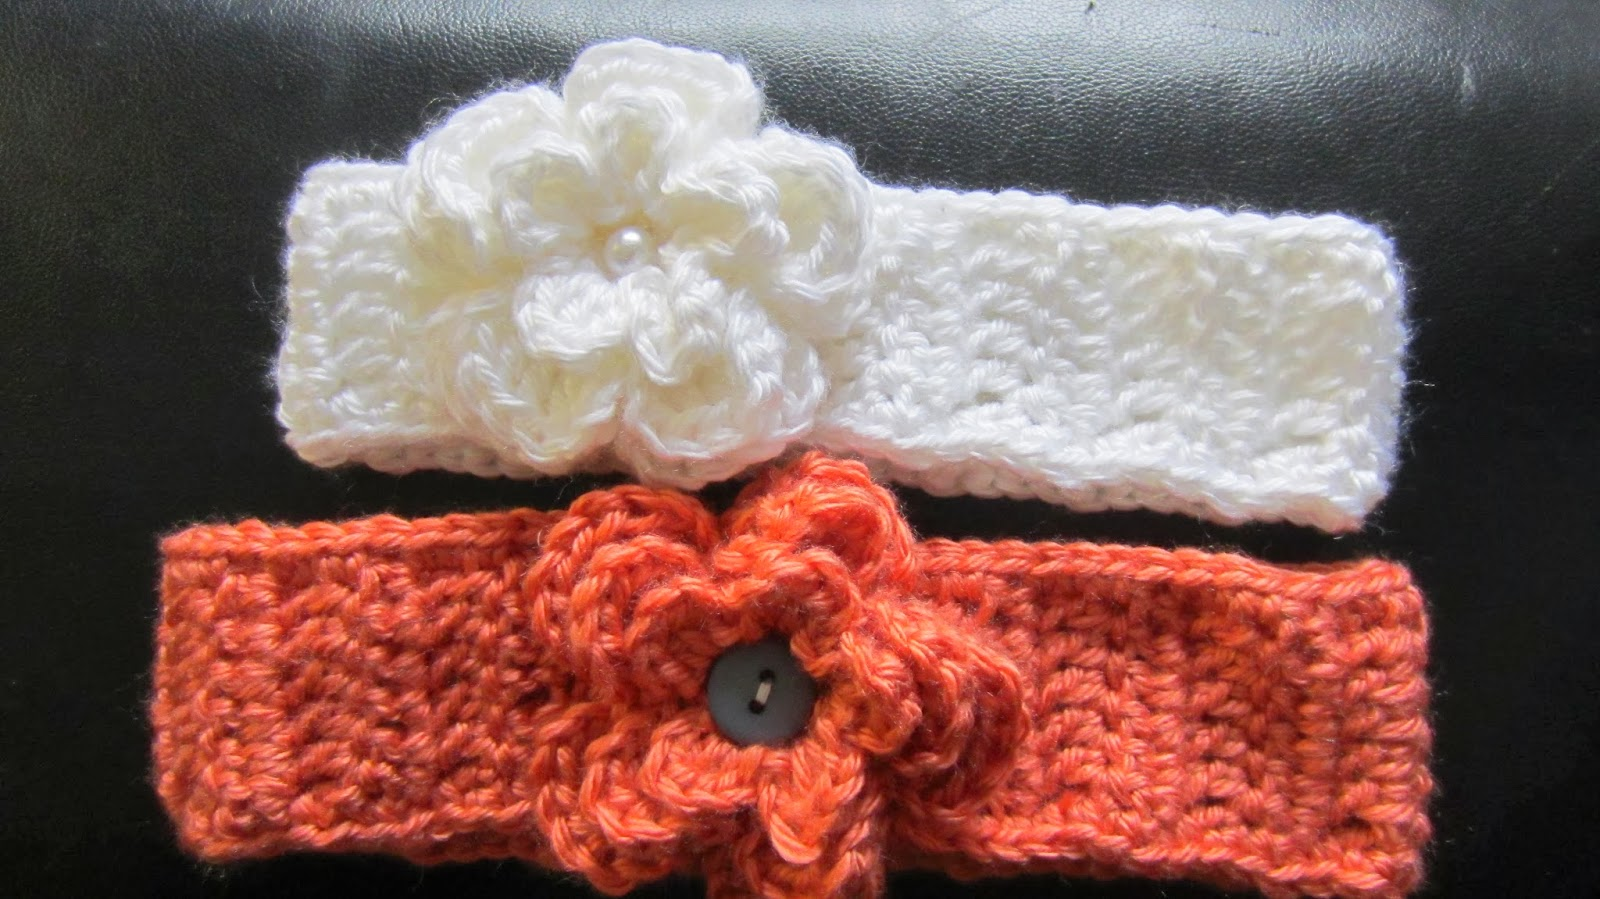 Crochet Headband Pattern For Baby With Flower : Olenas Crafts: Free Crochet Pattern Baby Toddler Child ...